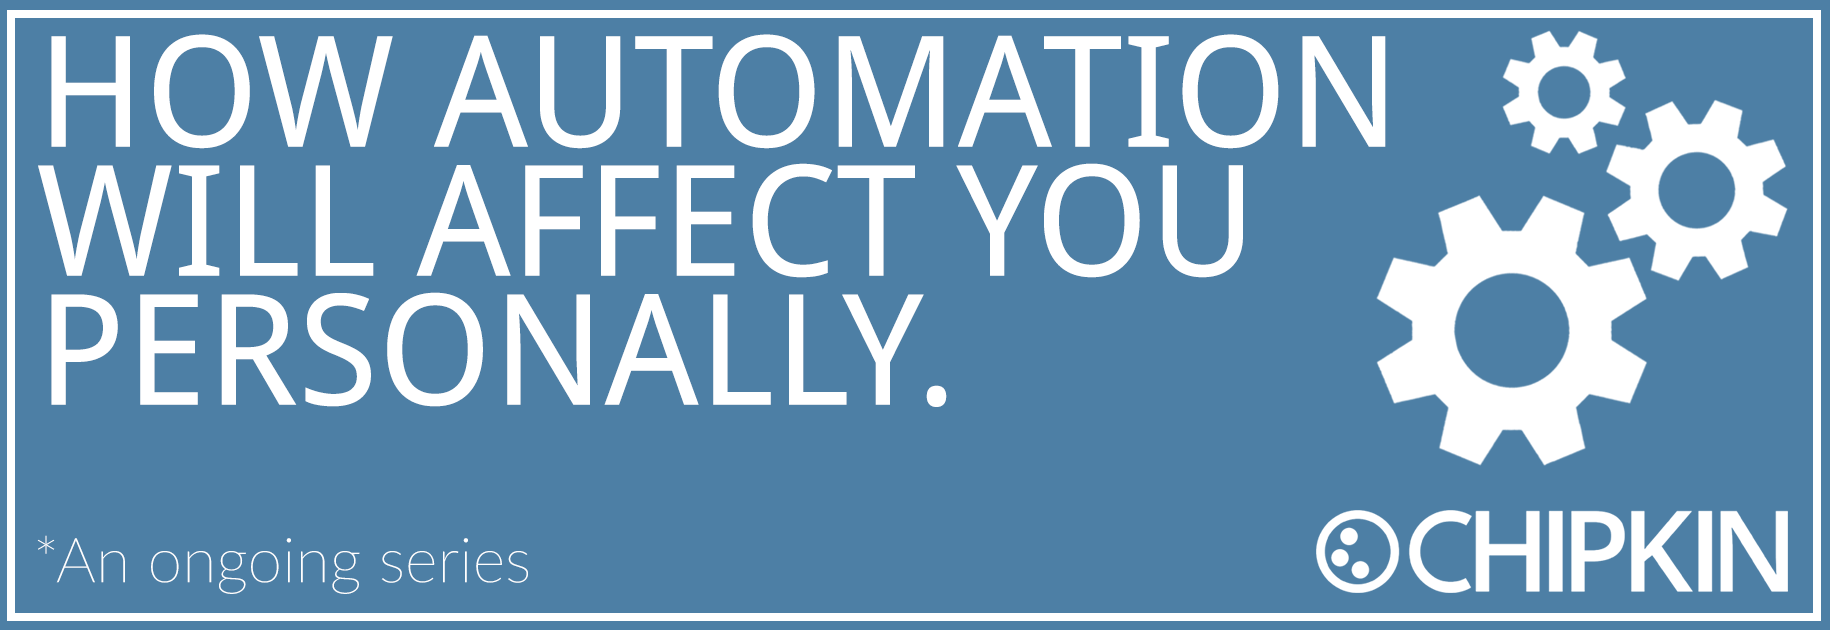 How Automation Will Affect You